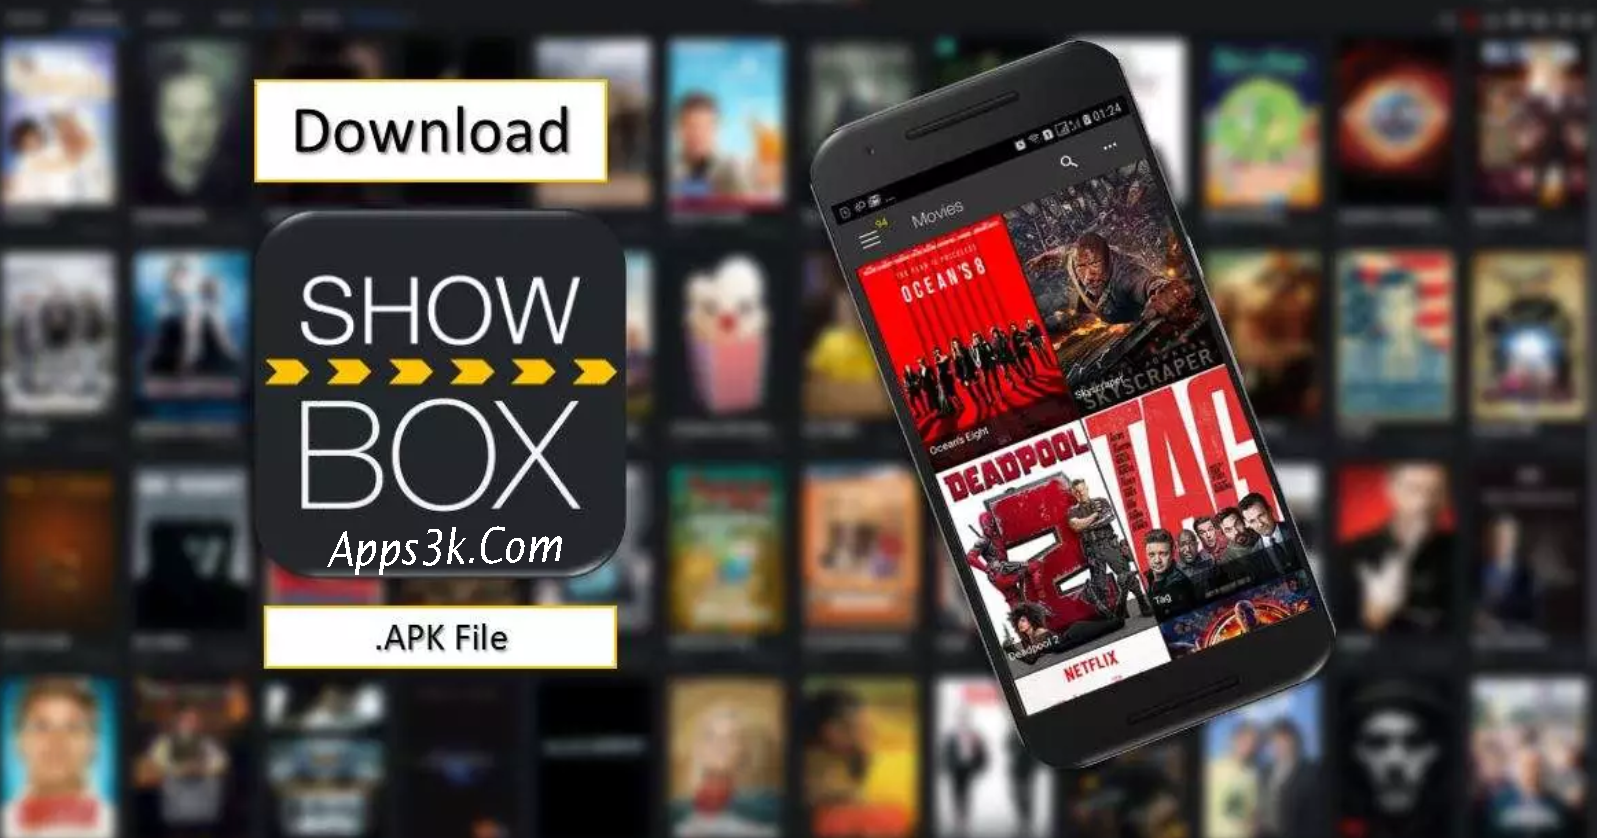 Showbox App free download